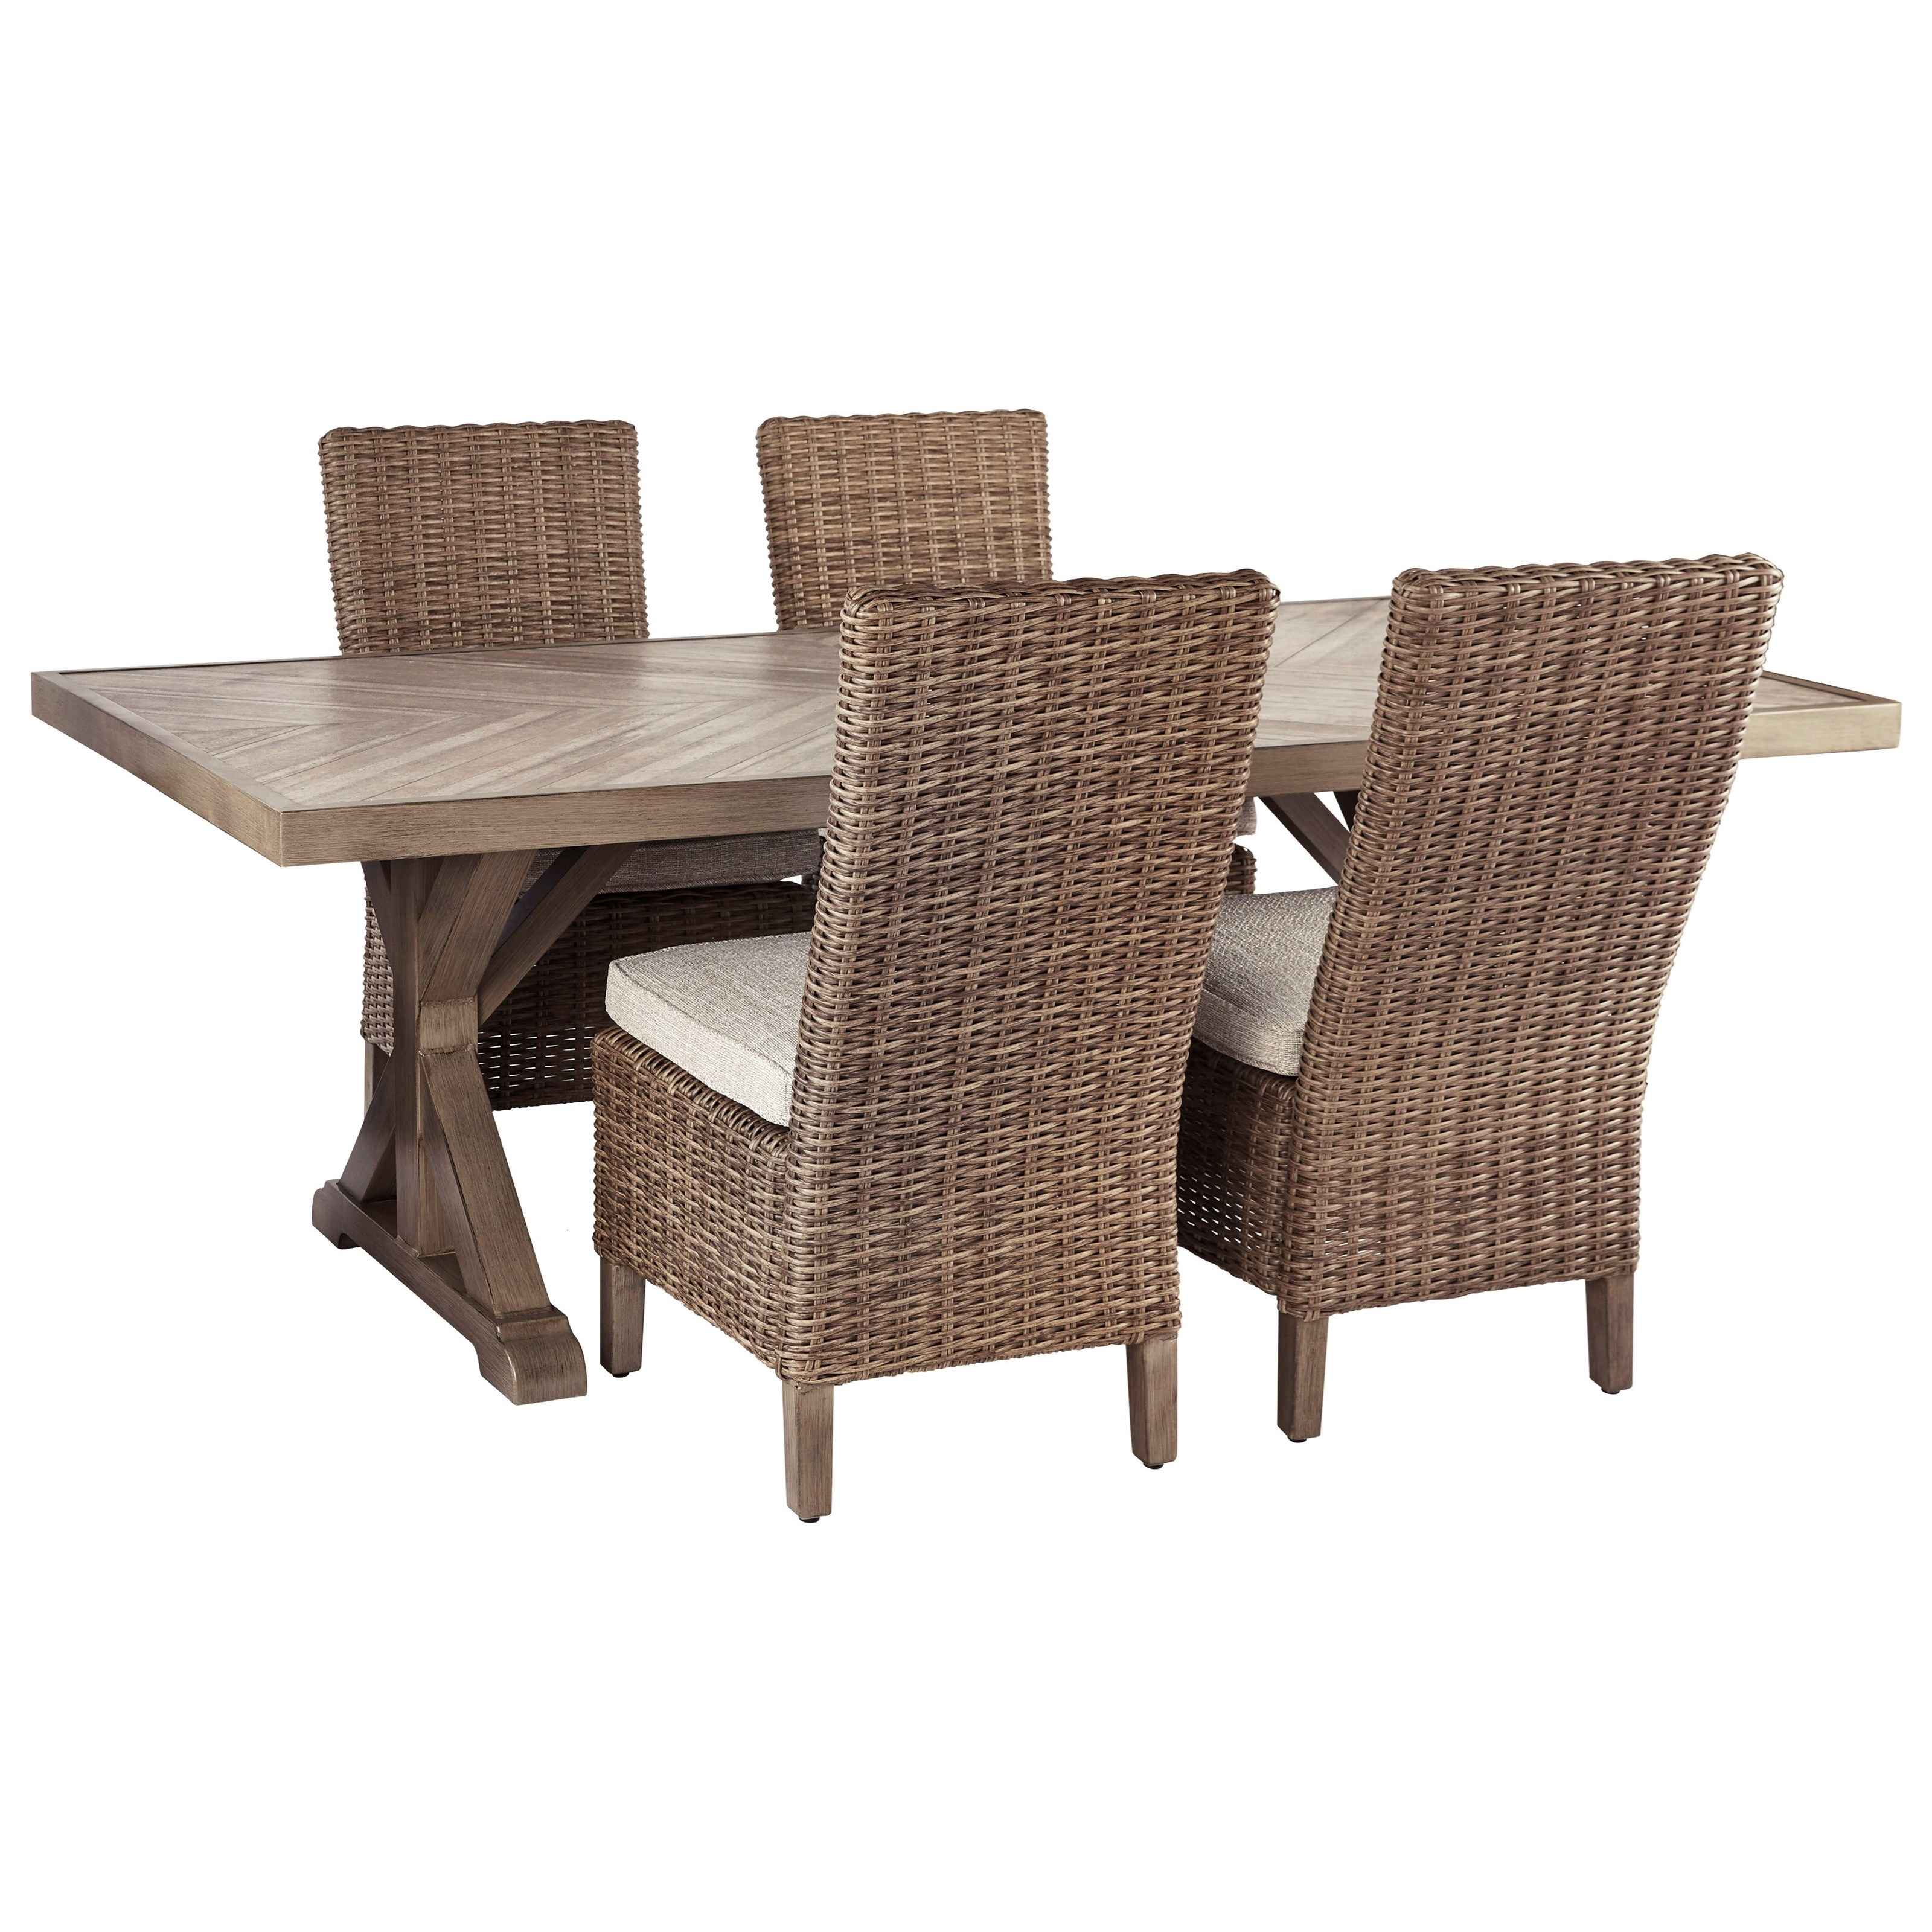 Beachcroft 5 Piece Outdoor Dining Set by Signature Design by Ashley at Miller Waldrop Furniture and Decor